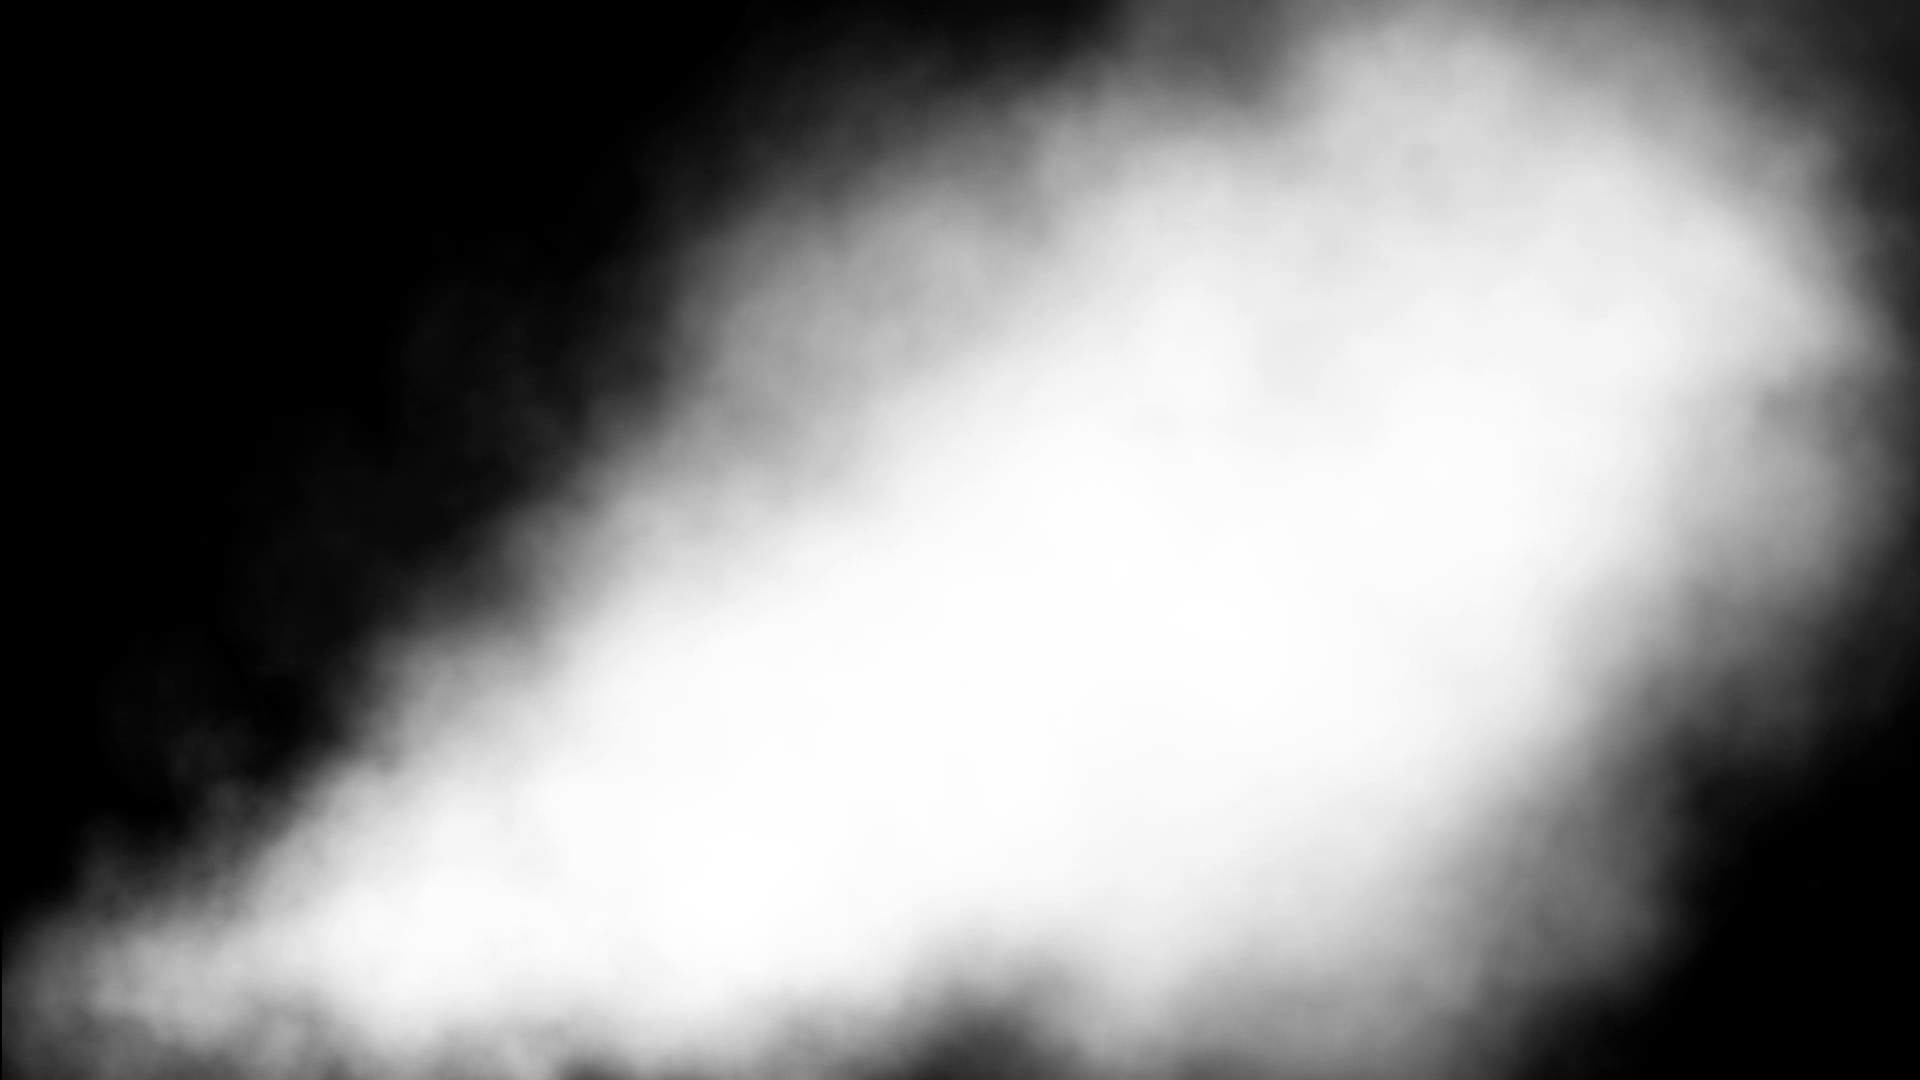 Res: 1920x1080, Big White Smoke Wind Black Background ANIMATION FREE FOOTAGE HD - YouTube